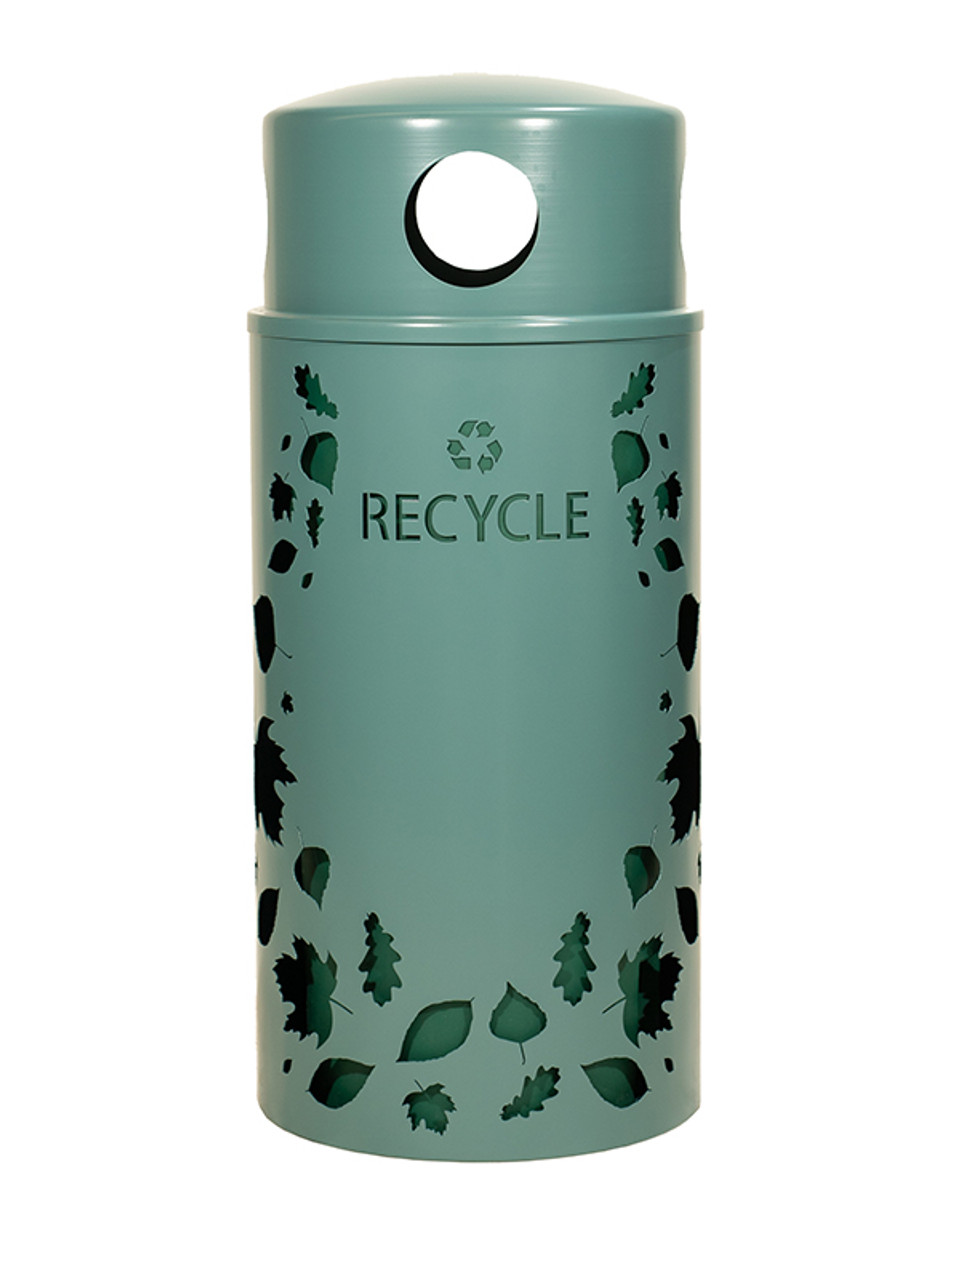 33 Gallon Nature Series Green Recycle Bin w/Anchor and Pole Kit (Leaves Design)